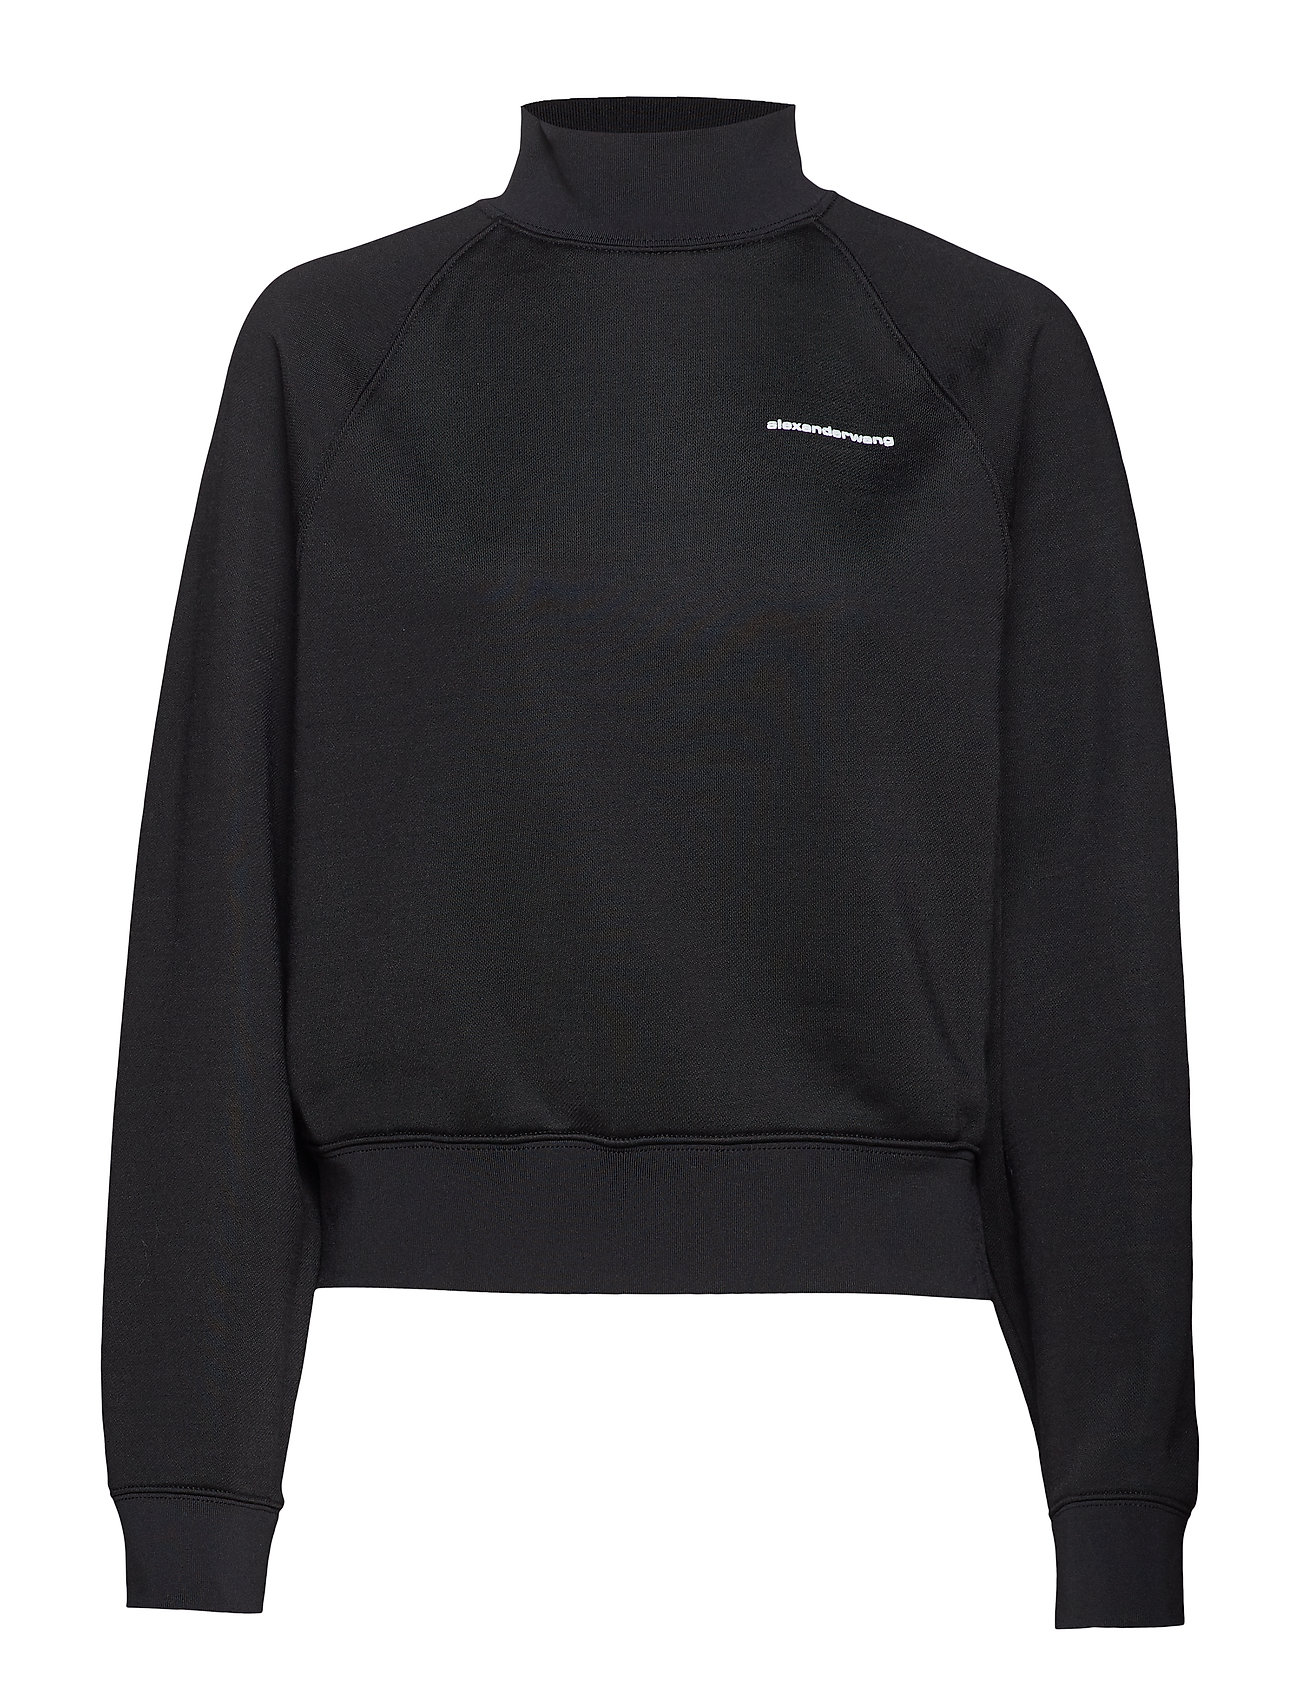 T by Alexander Wang HEAVY SLEEK FRENCH TERRY TURTLE NECK SWEATSHIRT - BLACK